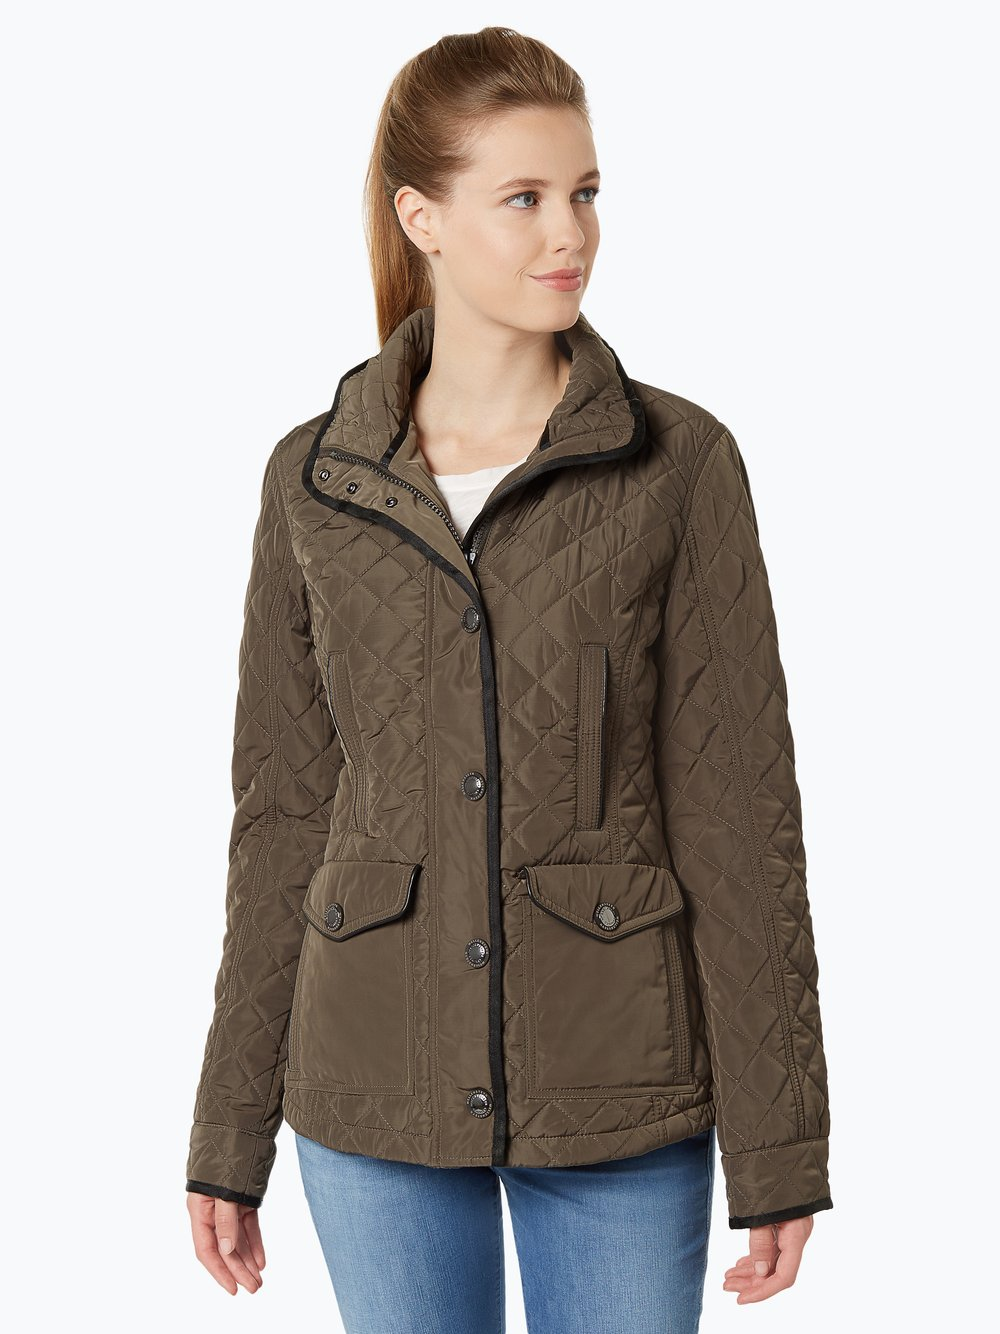 Wellensteyn Steppjacke women khaki Ashford Lady Größe